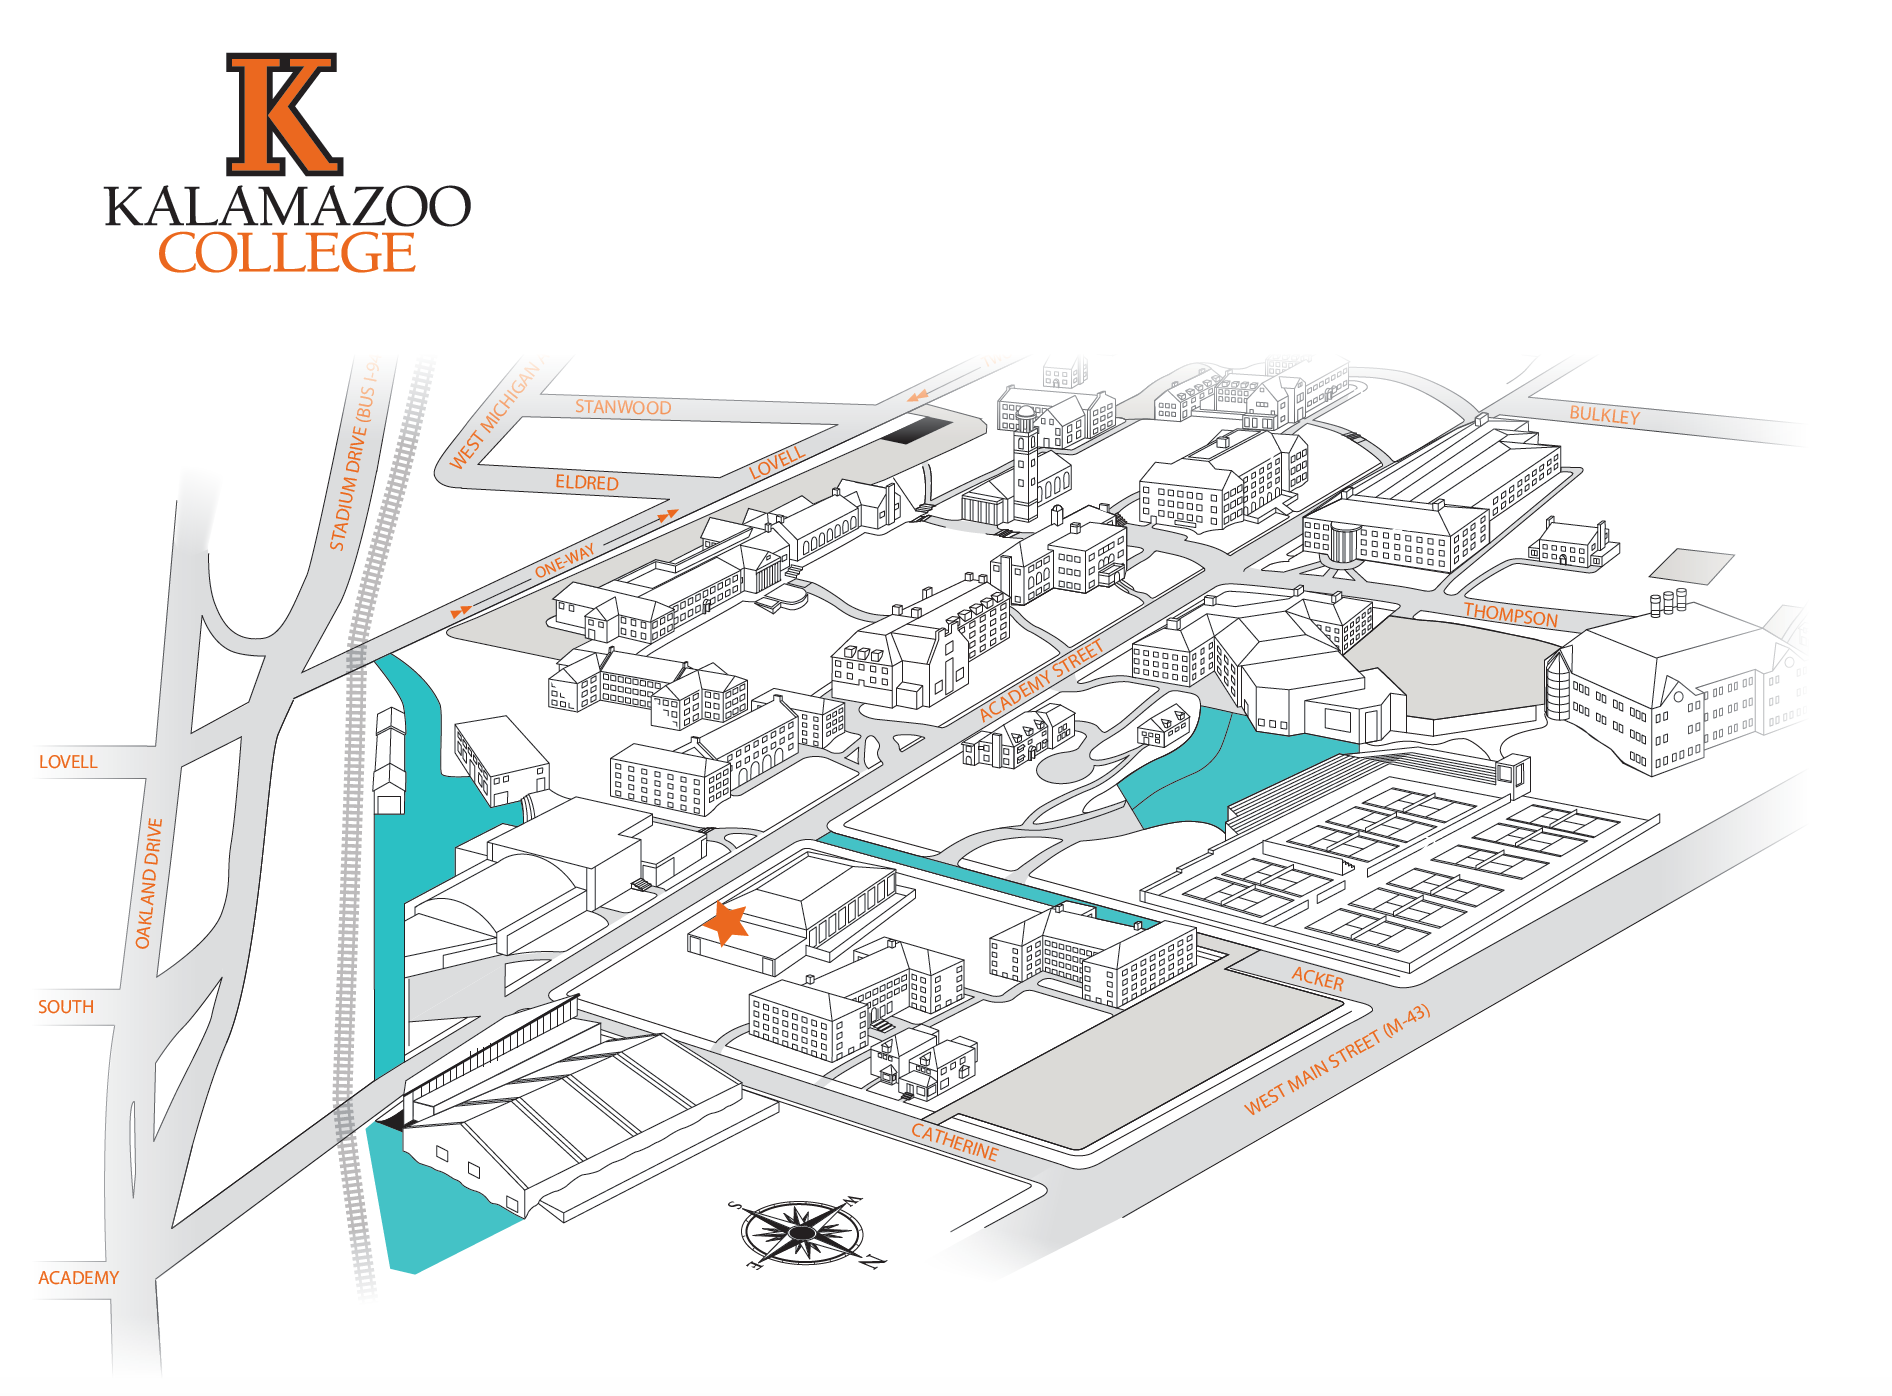 There is no street parking available during the 5:00am practices at Kalamazoo College. We have permission to park in the lots indicated in teal. See you at the pool!